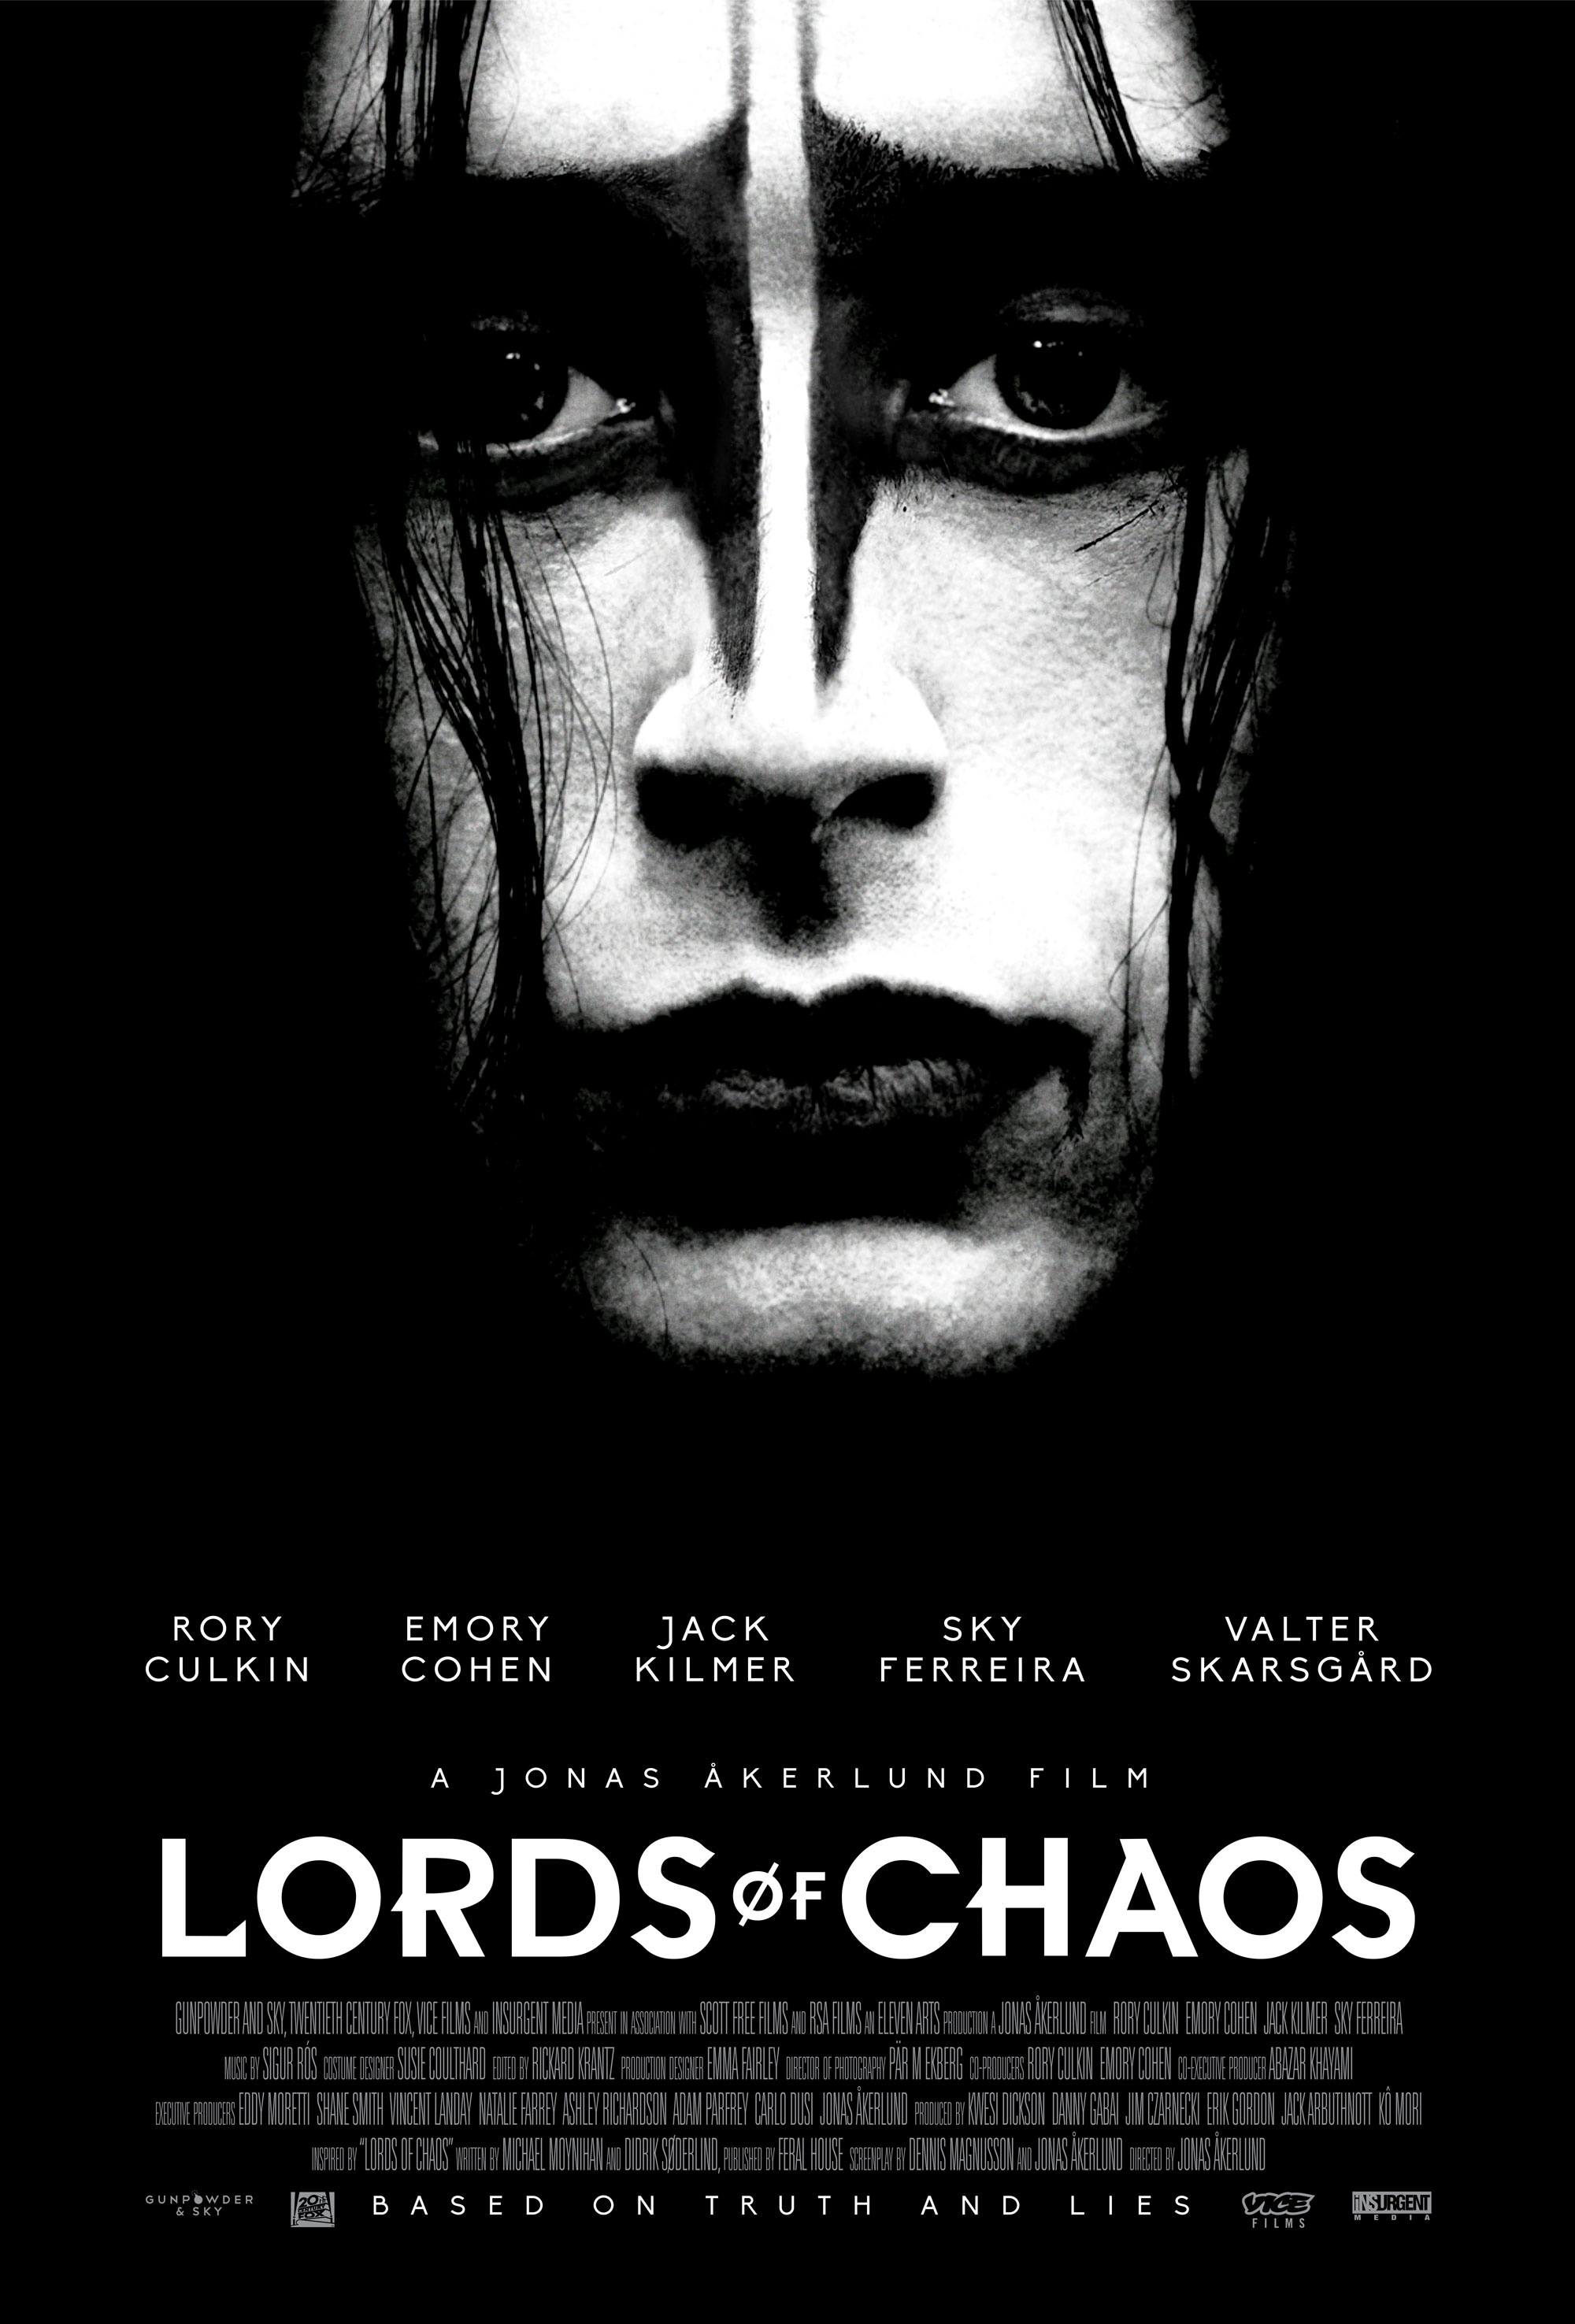 Lords of Chaos': Black Metal Biopic Should Be Burned at the